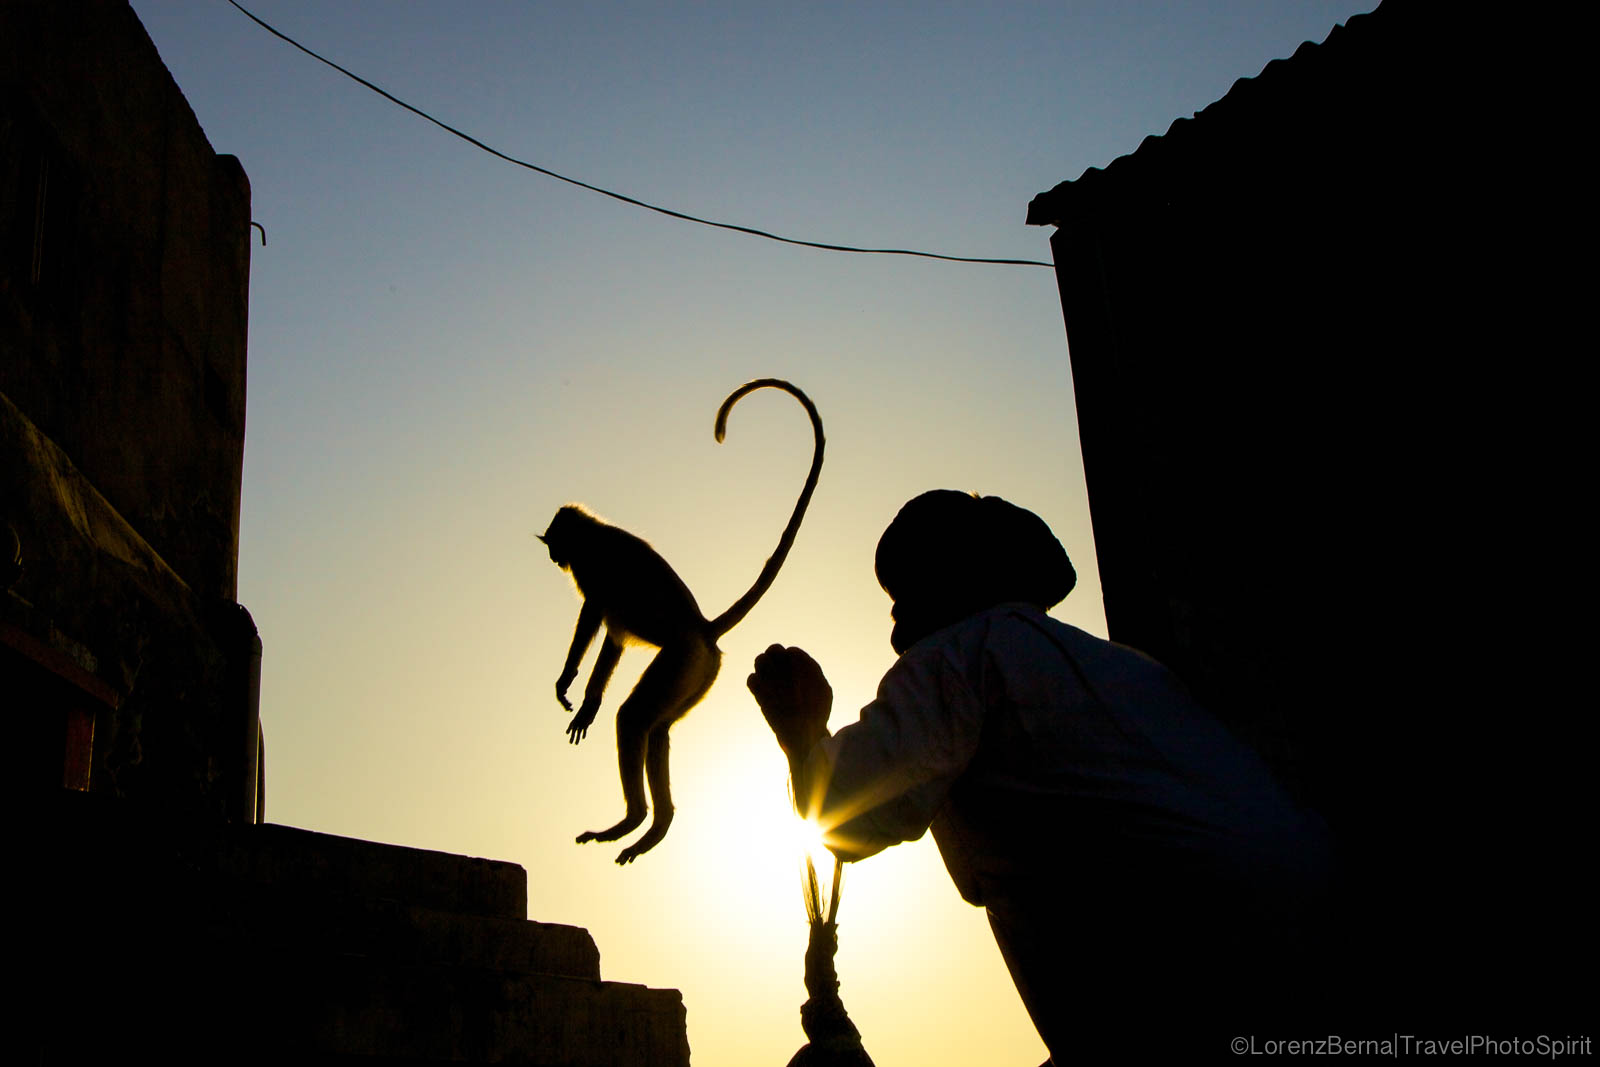 Shaman of the Monkeys - India street photography by Lorenz Berna